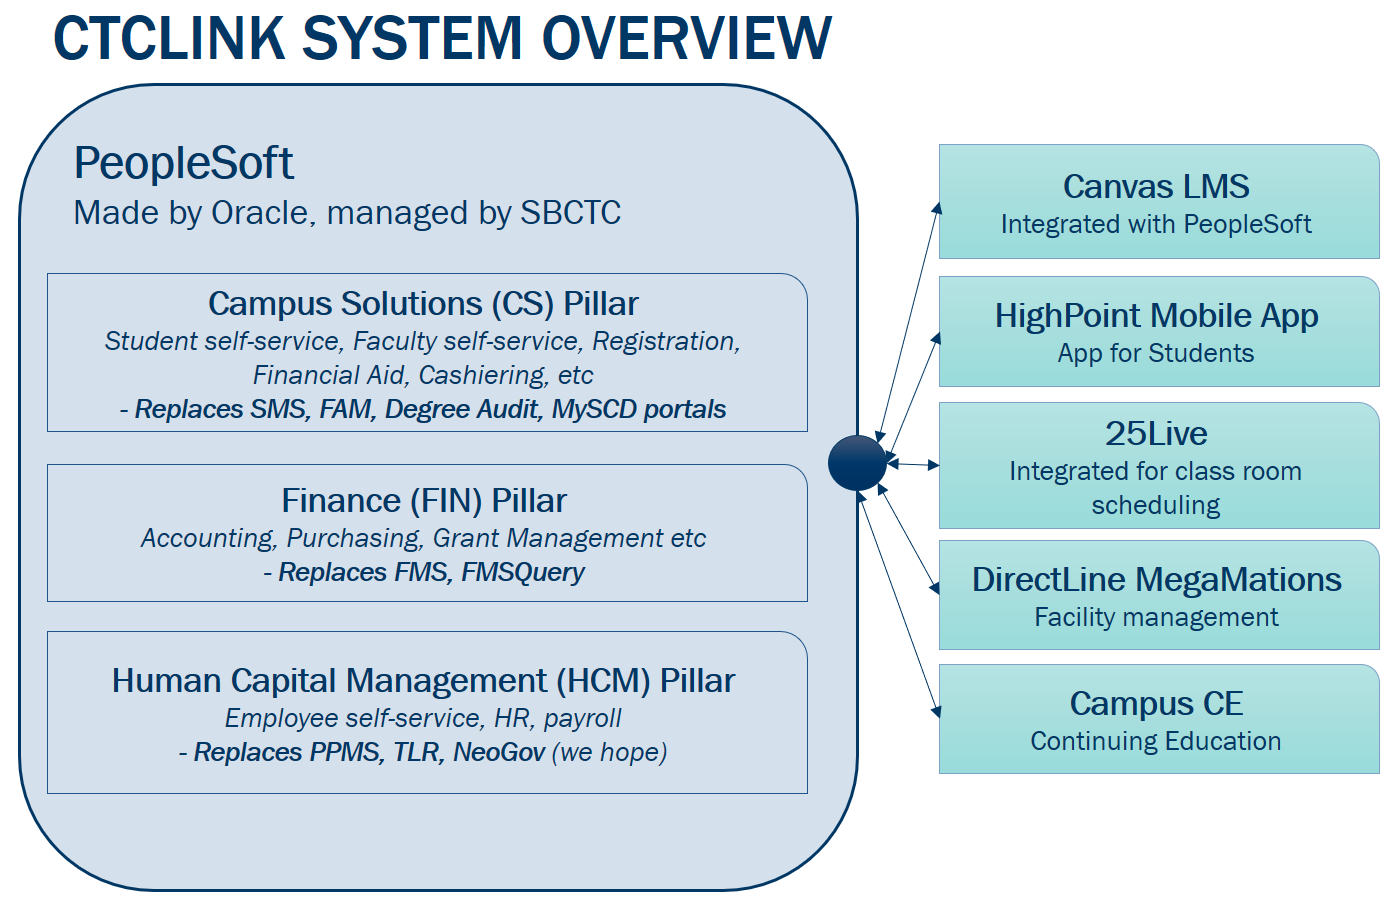 ctcLink System Overview